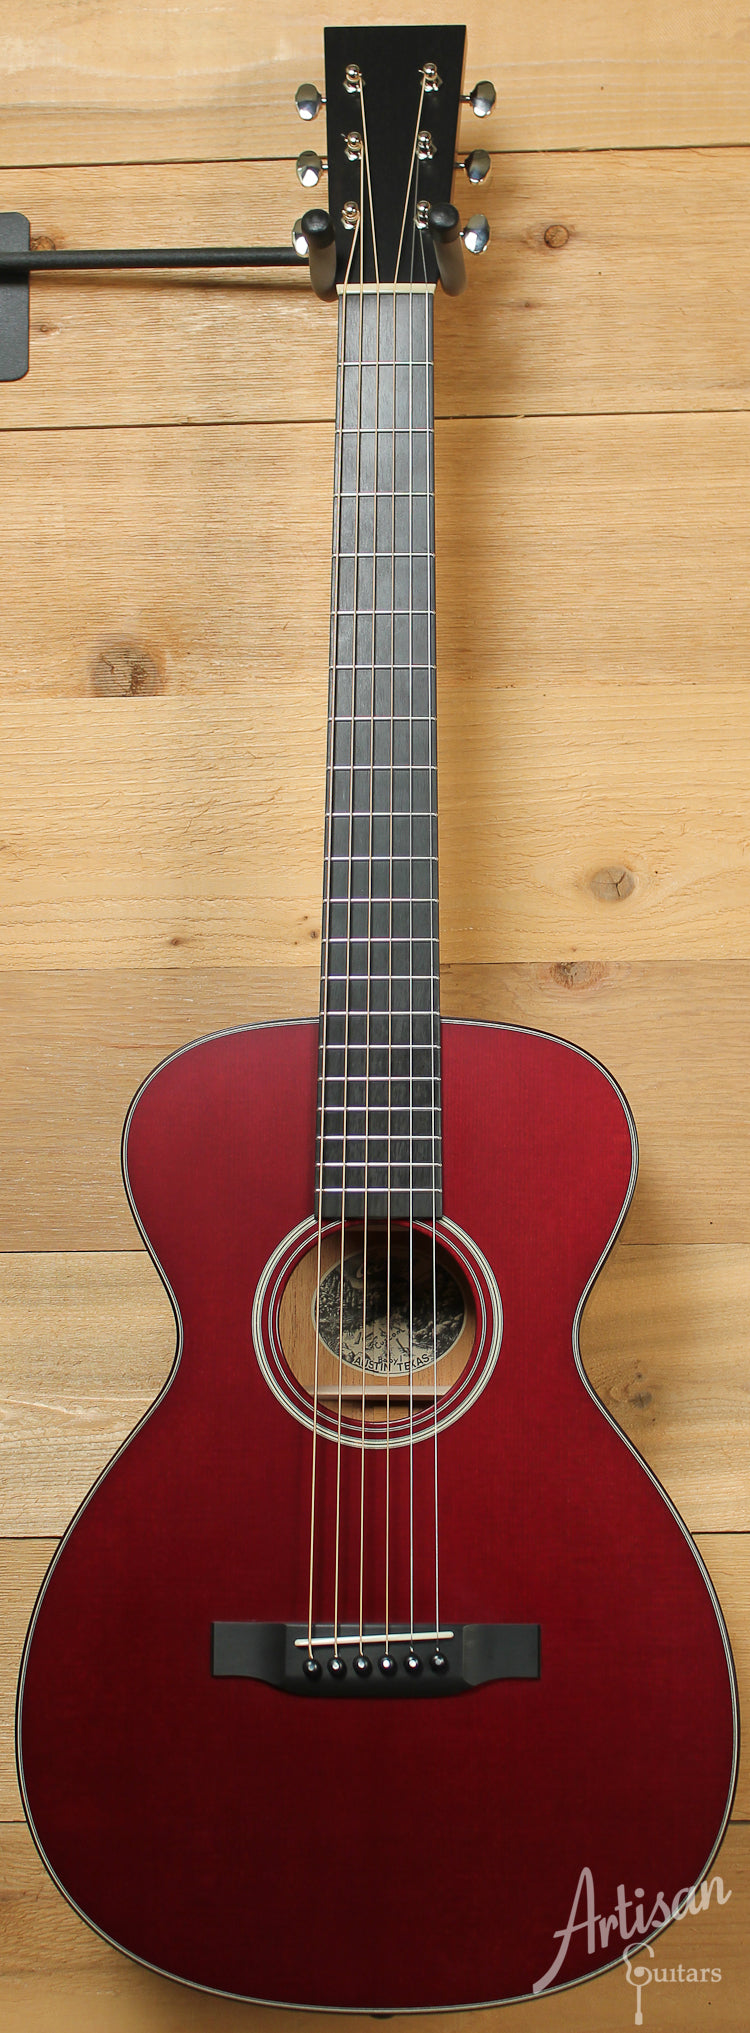 Collings Baby 1 Sitka Spruce and Mahogany with Custom Merlot Top and Full Satin Finish ID-8151 - Artisan Guitars